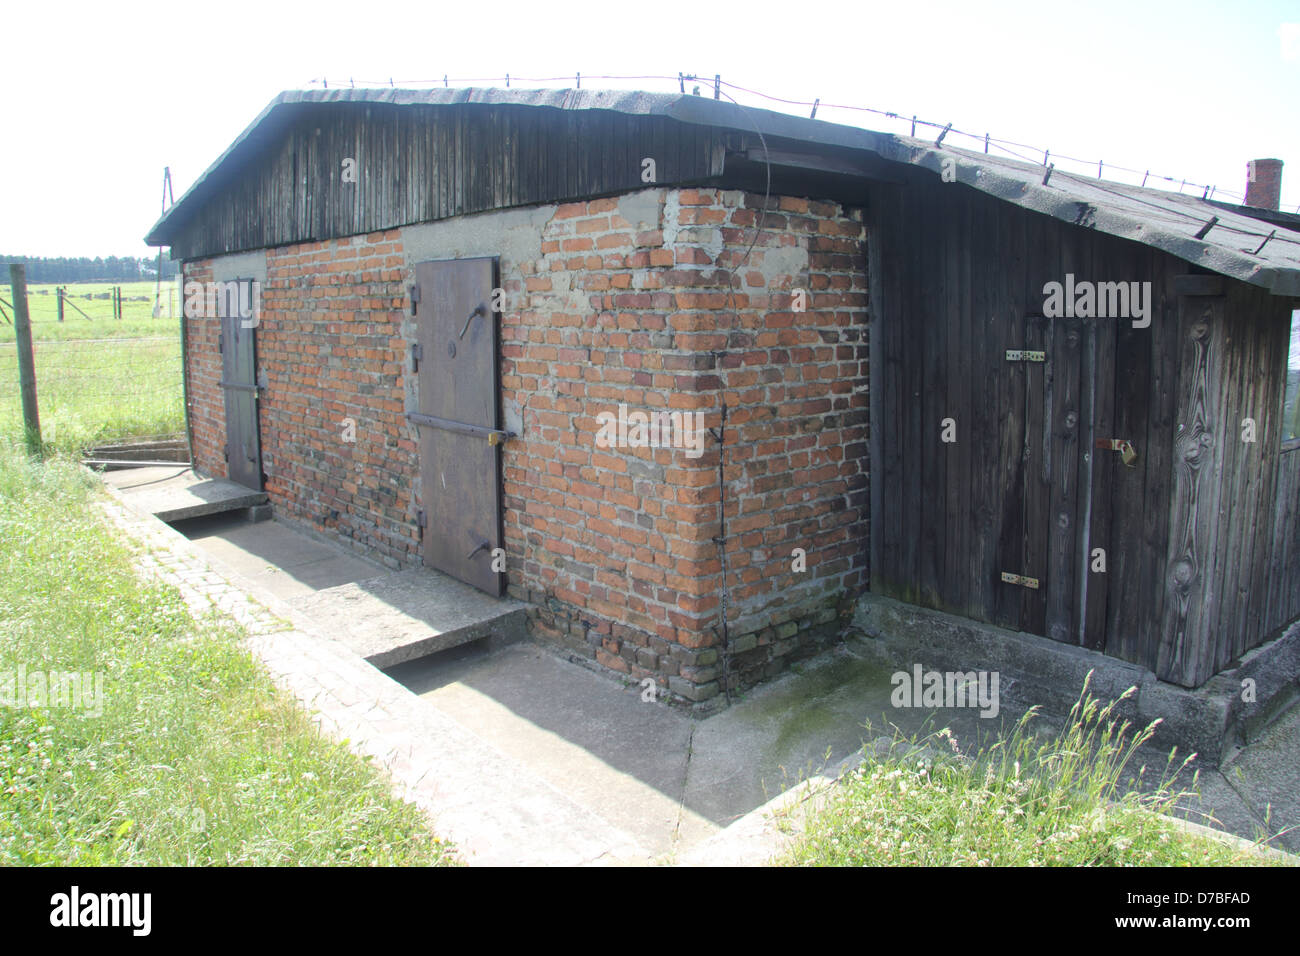 The back side of barrack 41 of Majdanek Gas Chamber - Stock Image